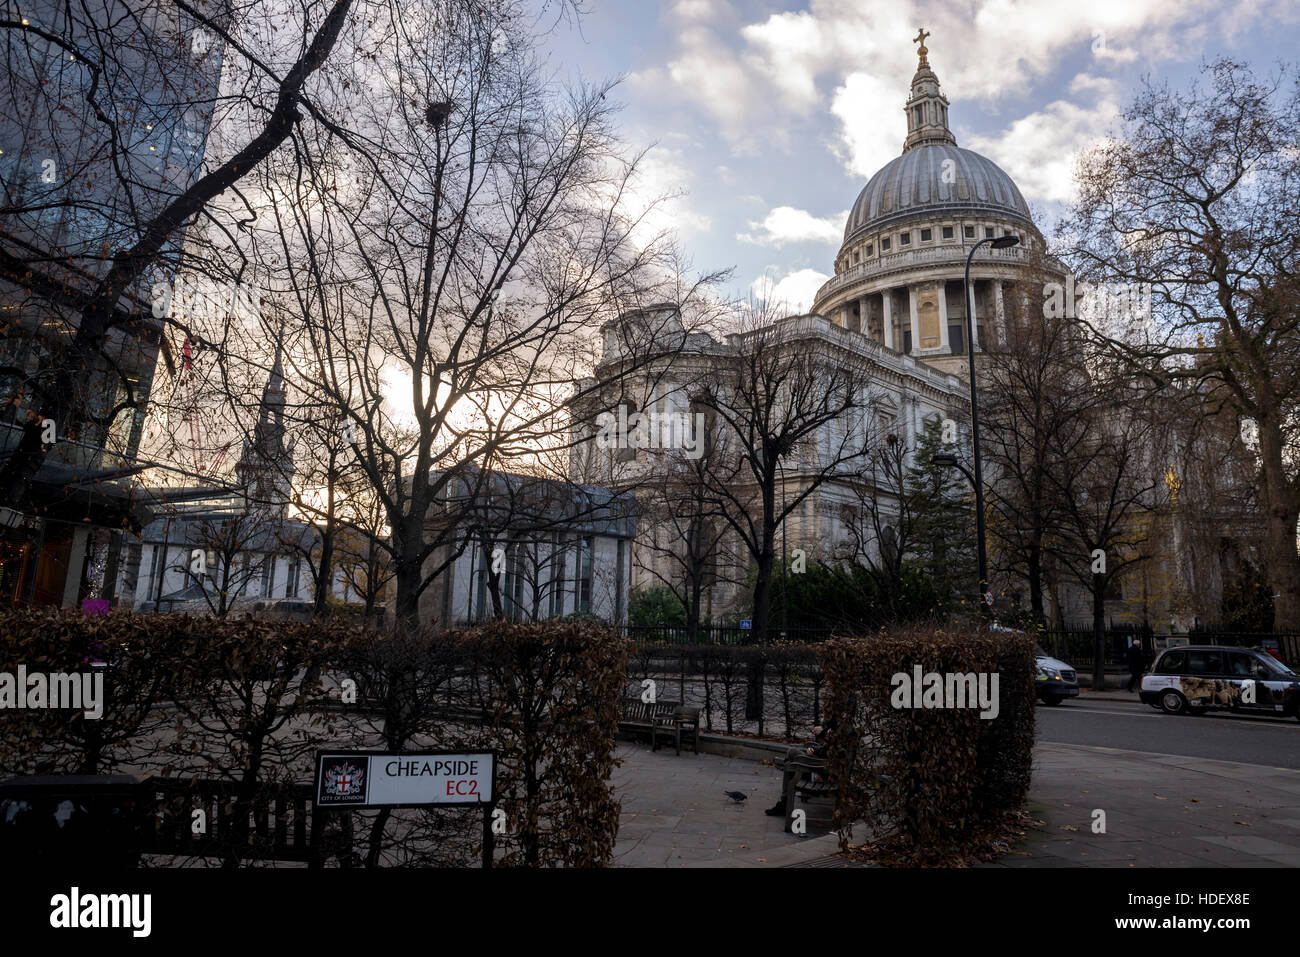 View of St.Paul's Cathedral from Cheapside and One New Change. - Stock Image